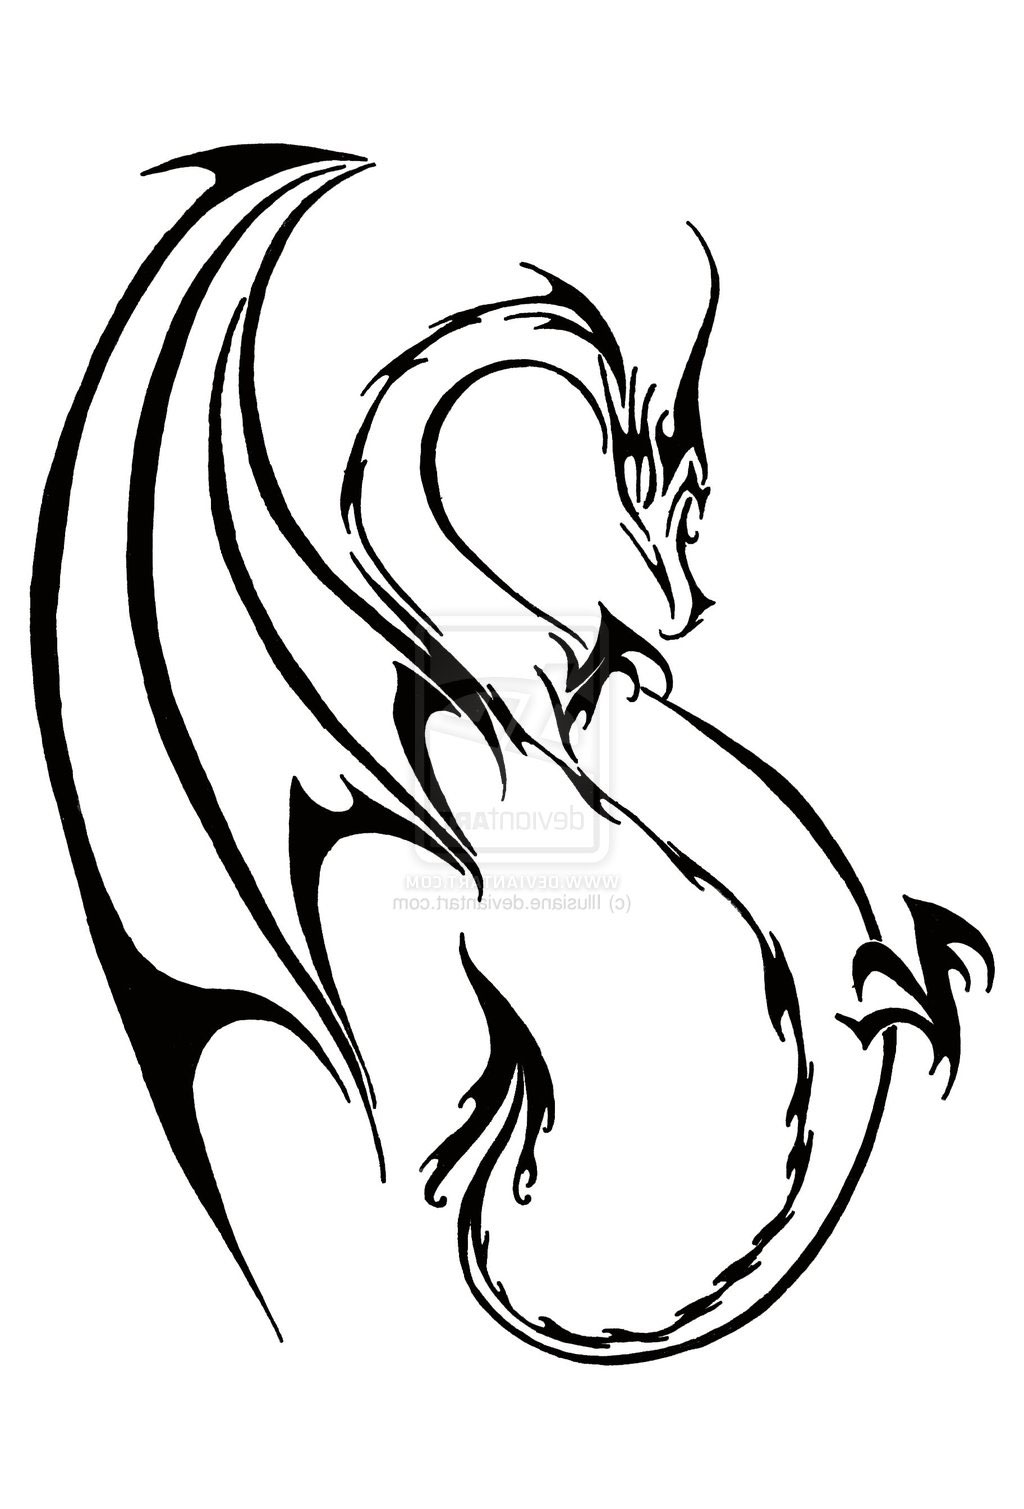 32 Simple Tribal Dragon Tattoos Ideas And Designs